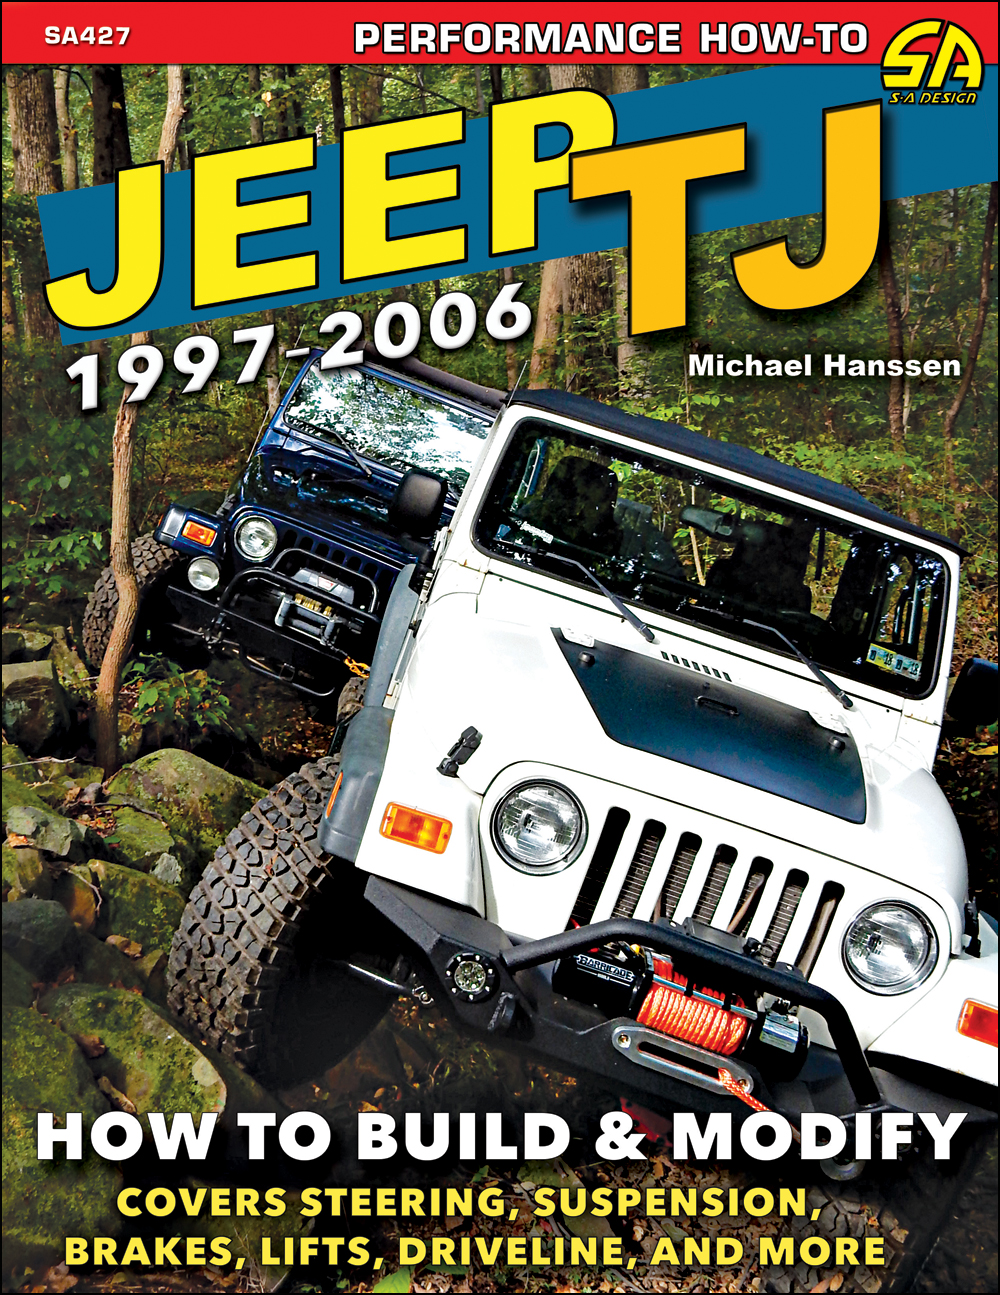 1997-2006 Jeep Wrangler TJ How To Build & Modify